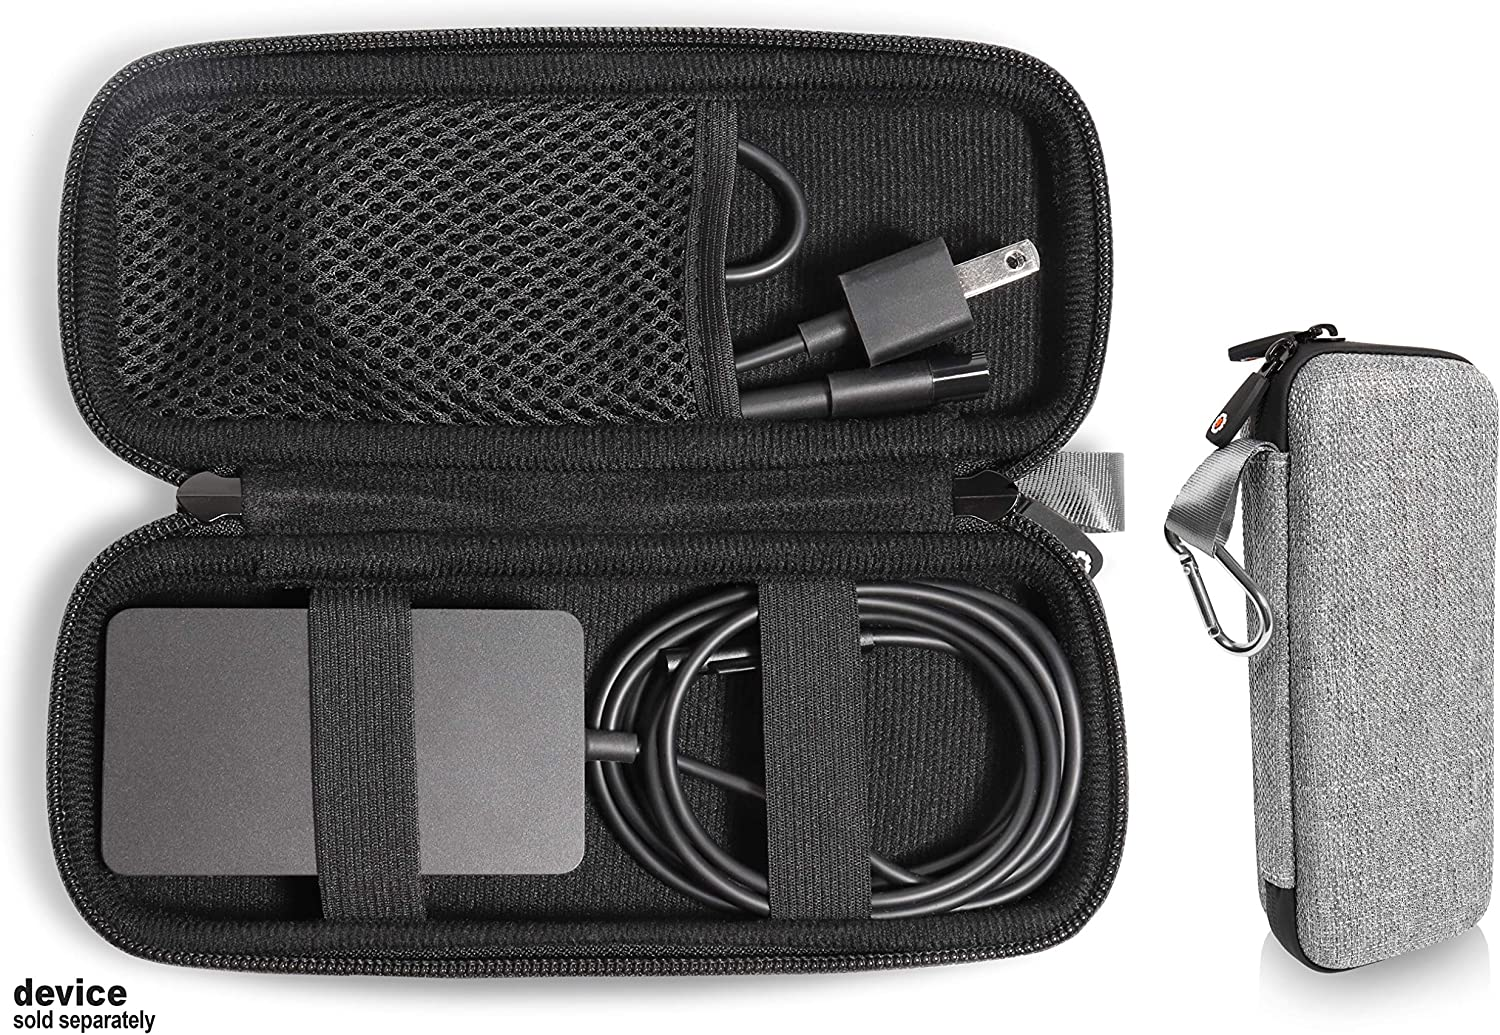 GETGEAR Laptop Charger case, Customized for Microsoft Surface, pro 2, with mesh Pocket for Microsoft Surface Arc Mouse, Flash Drive or Other Essential Accessories (Tweed Gray)